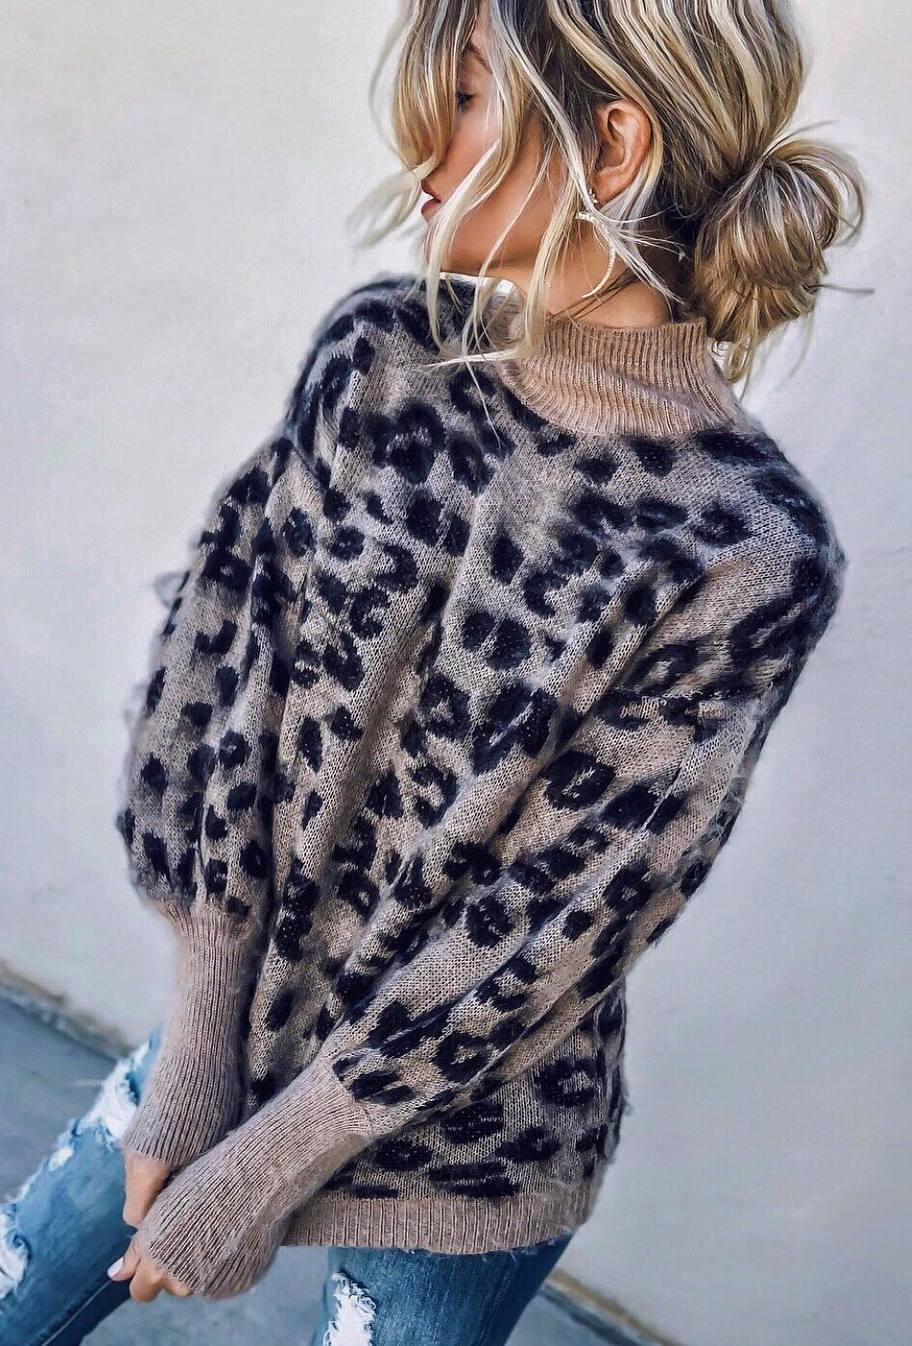 simple fall outfit / leopard sweater and ripped jeans